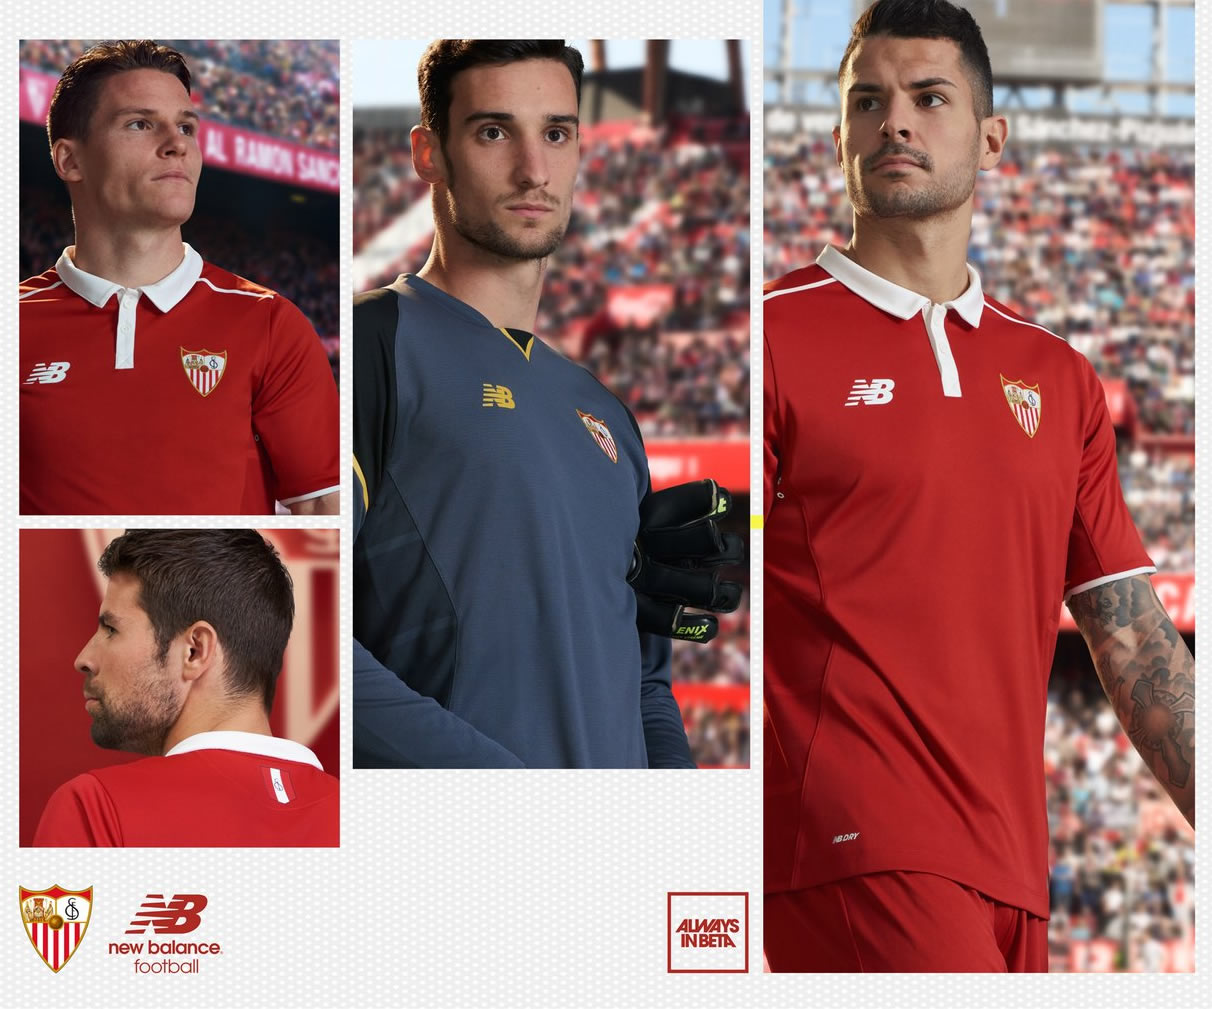 sevilla-16-17-away-kit-banner